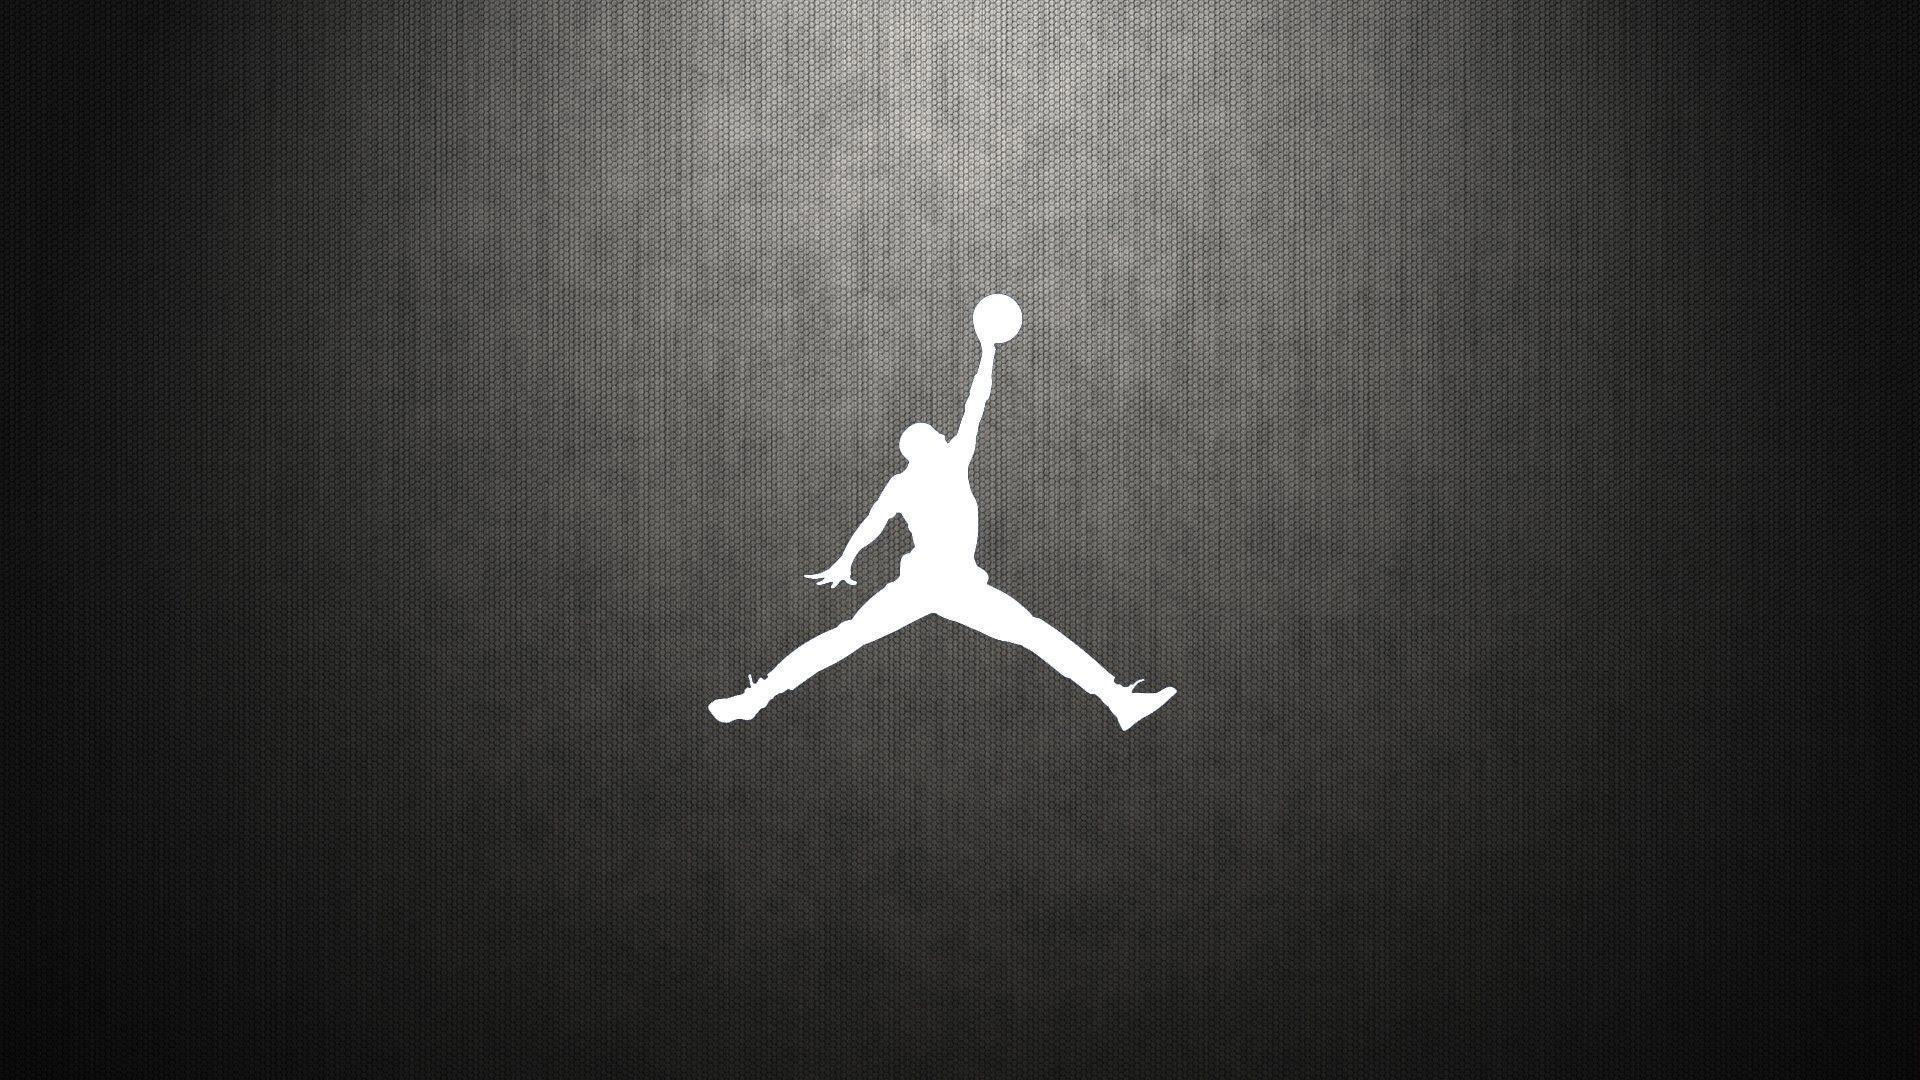 Jordan Logo Wallpaper HD | HD Wallpapers, Backgrounds, Images, Art ...